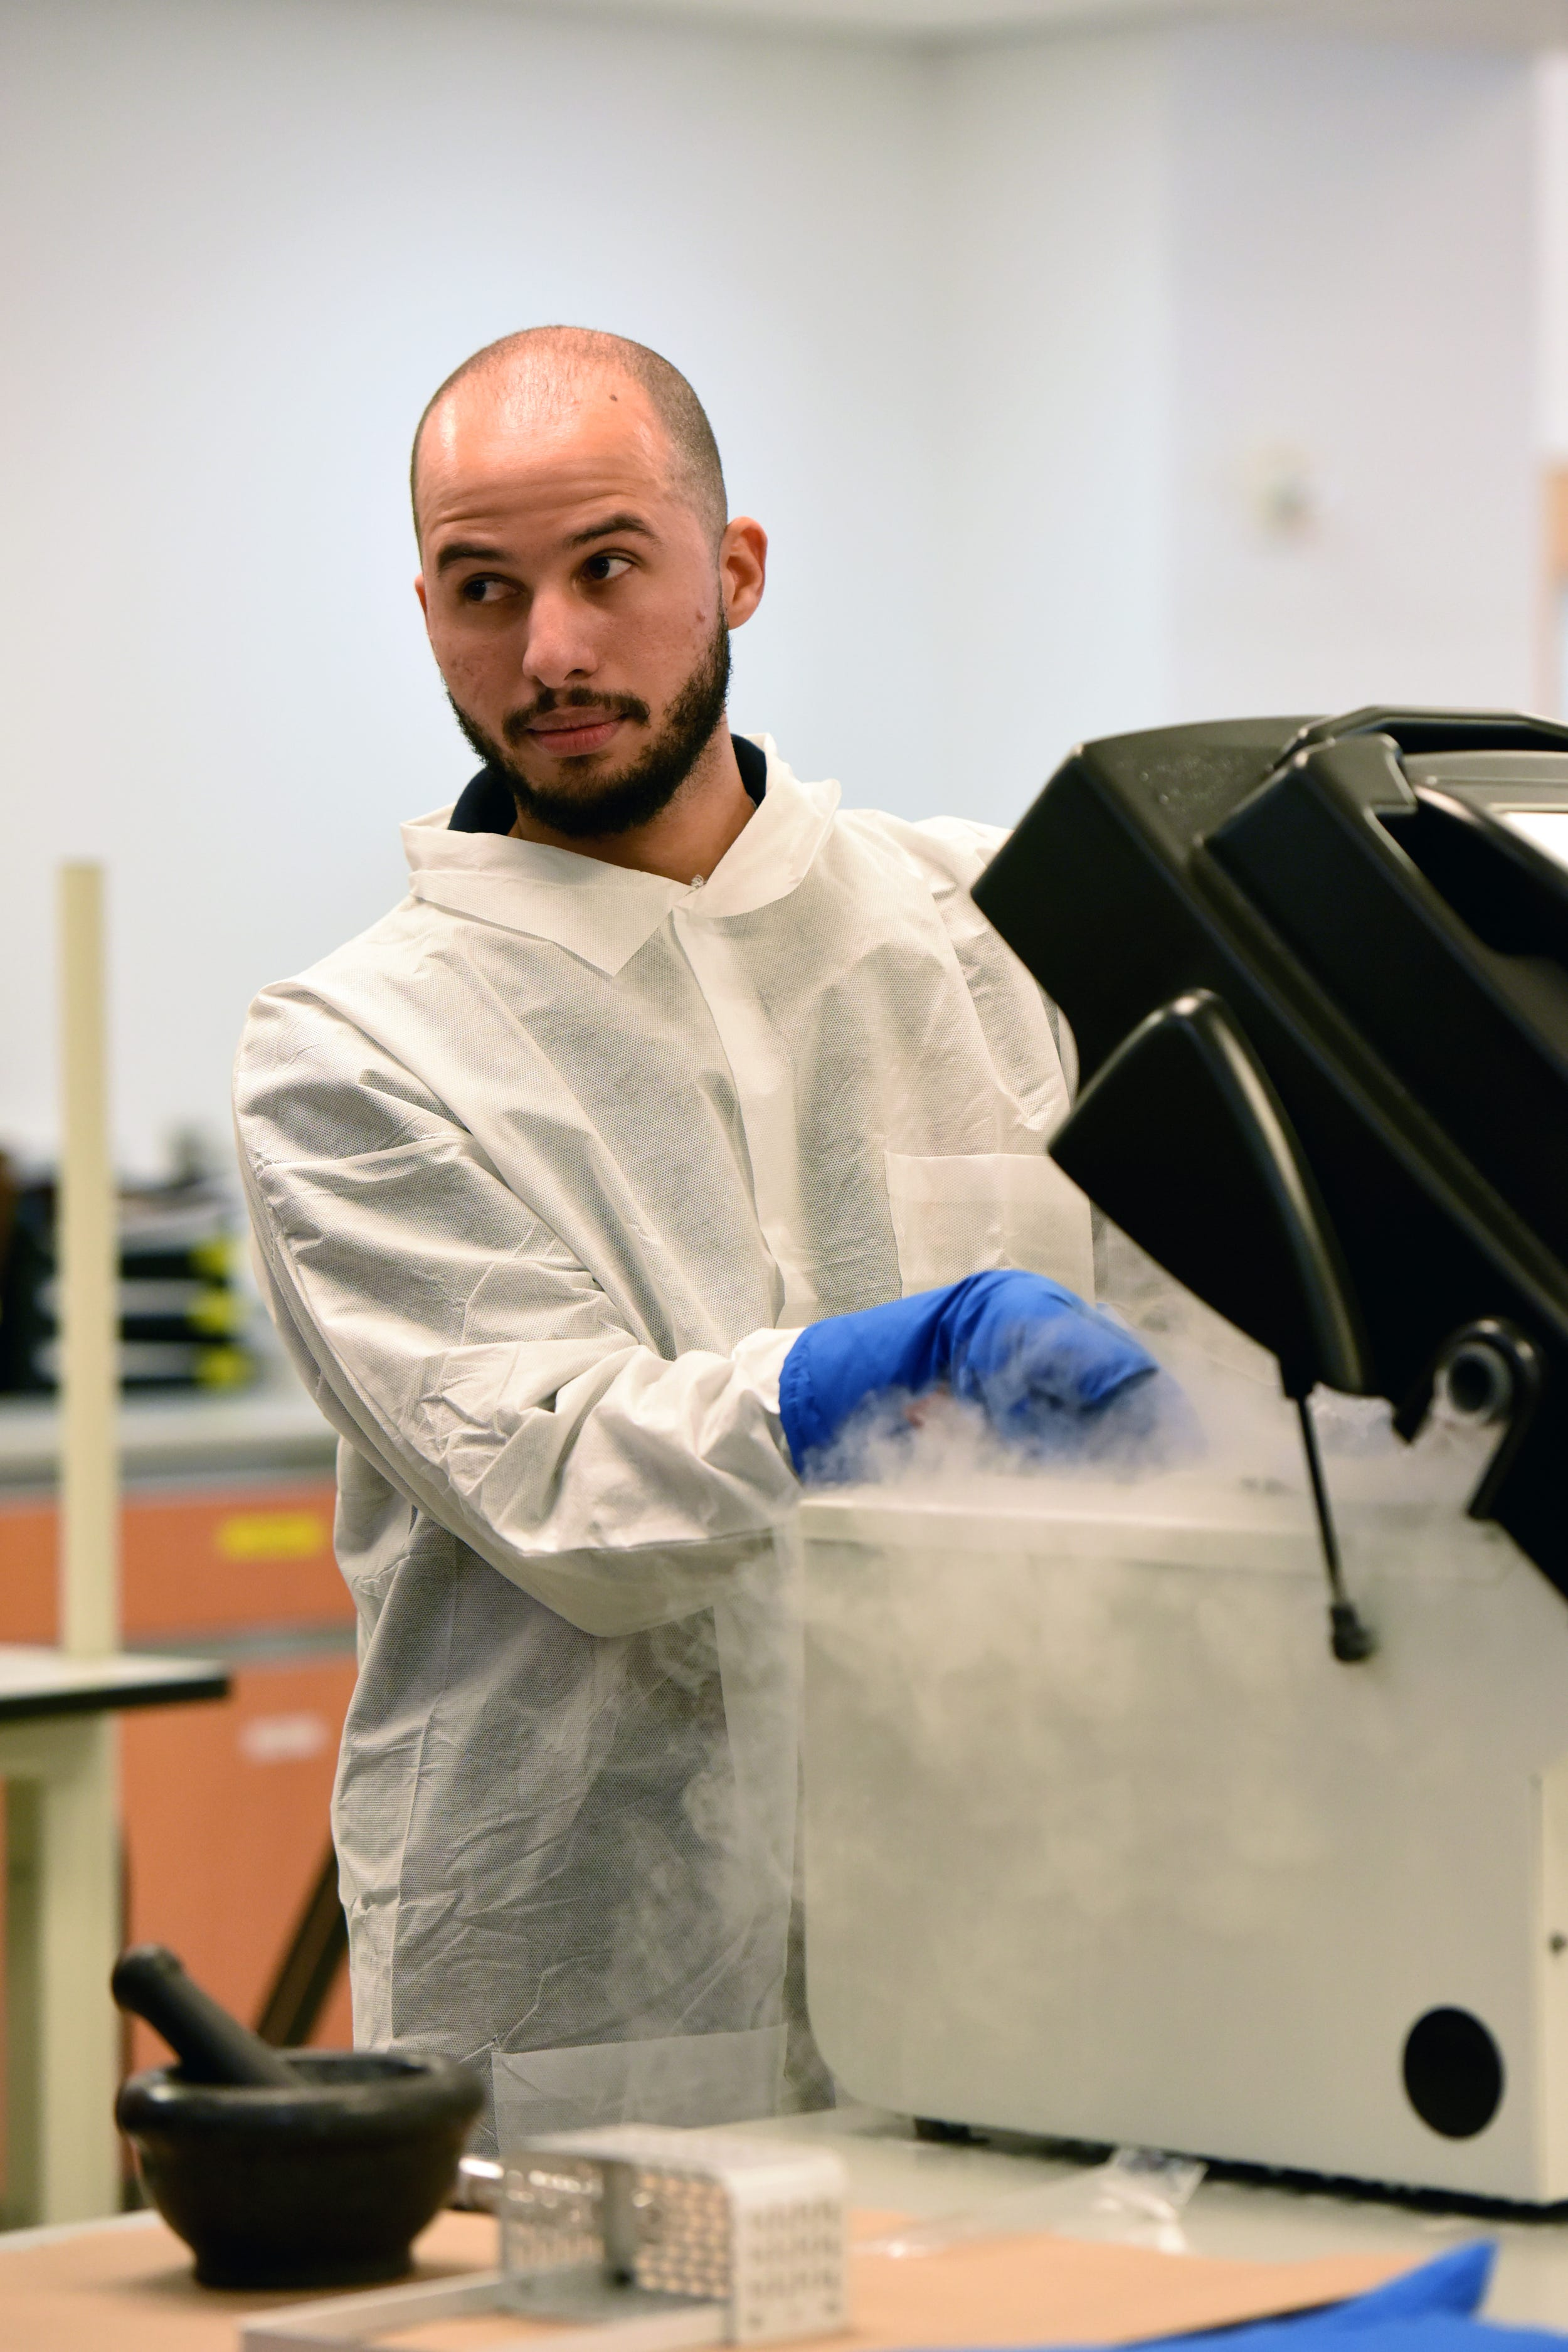 Yasser Hernandez, a forensic scientist with the New York City Office of Chief Medical Examiner, discusses the bone grinding process used to help identify remains of deceased victims. The unit handles DNA testing for unidentified persons, including victims of the attacks on the World Trade Center on 9/11.